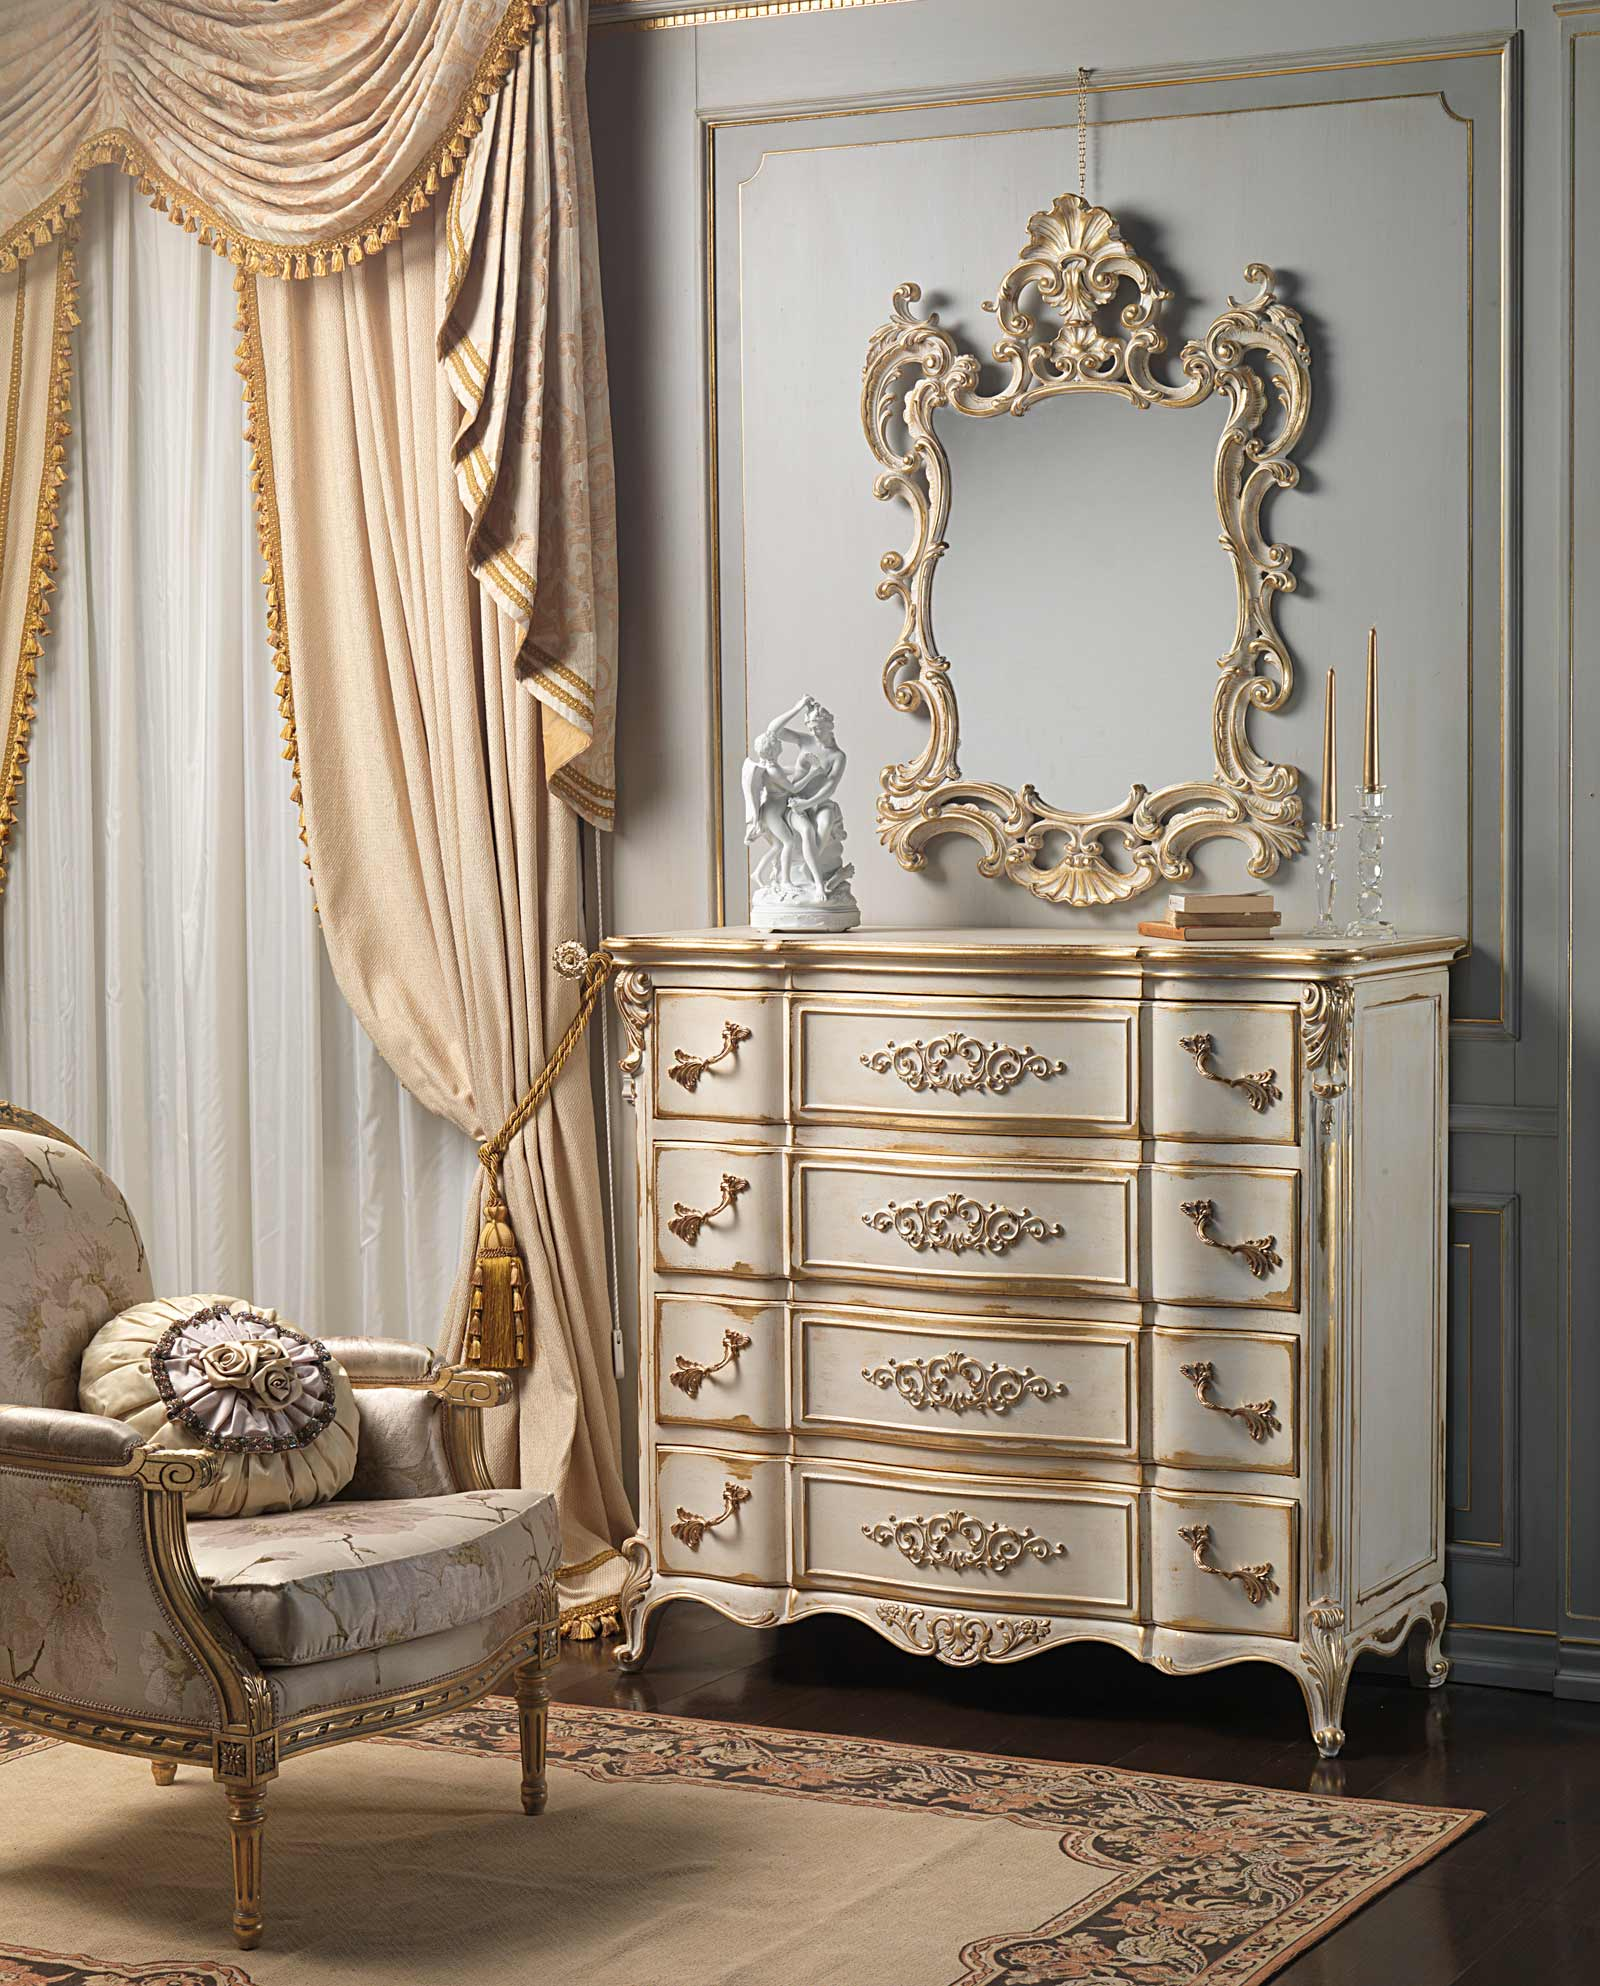 Classic louis xvi bedroom chest of drawers and mirror for Classic interior furniture